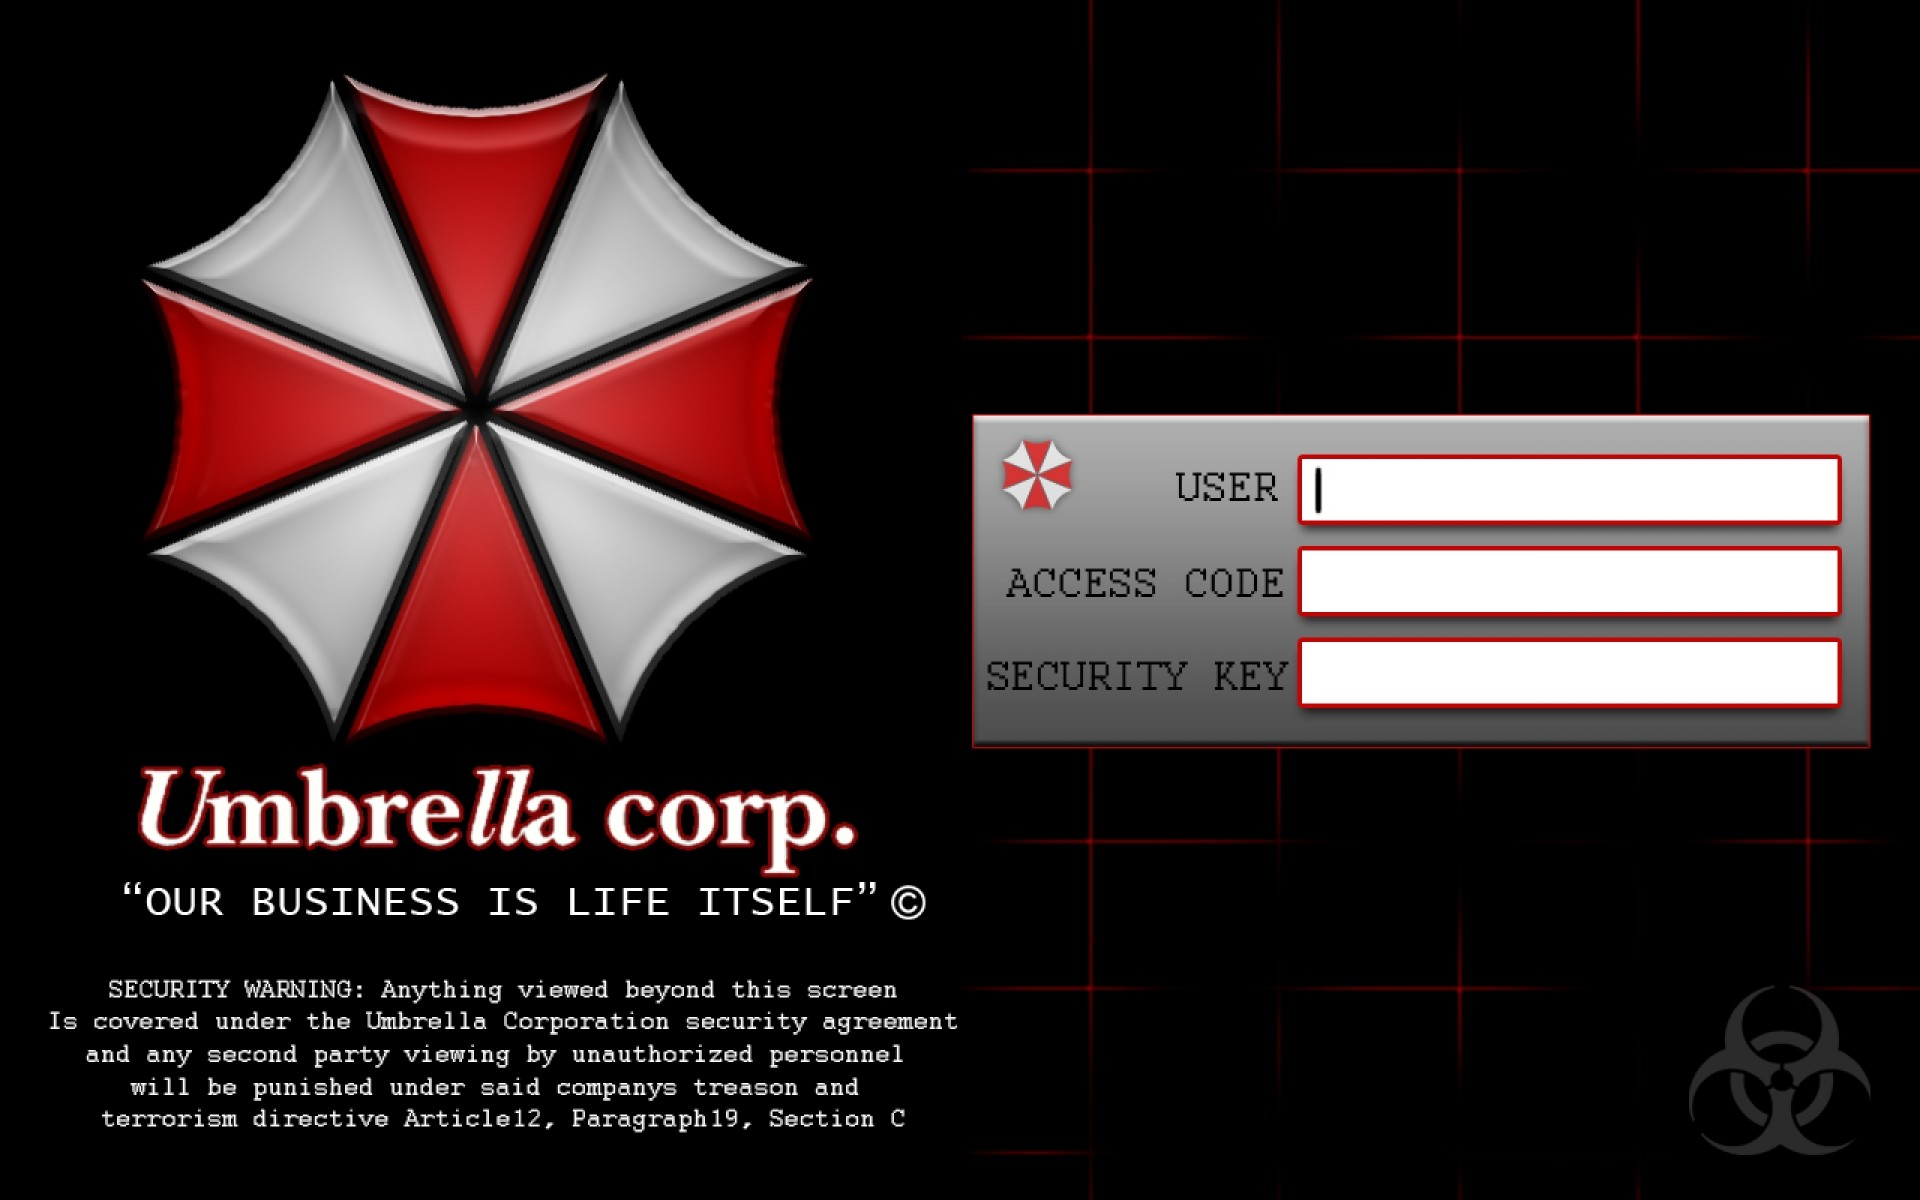 Download Umbrella Corp Wallpaper Iphone JPG